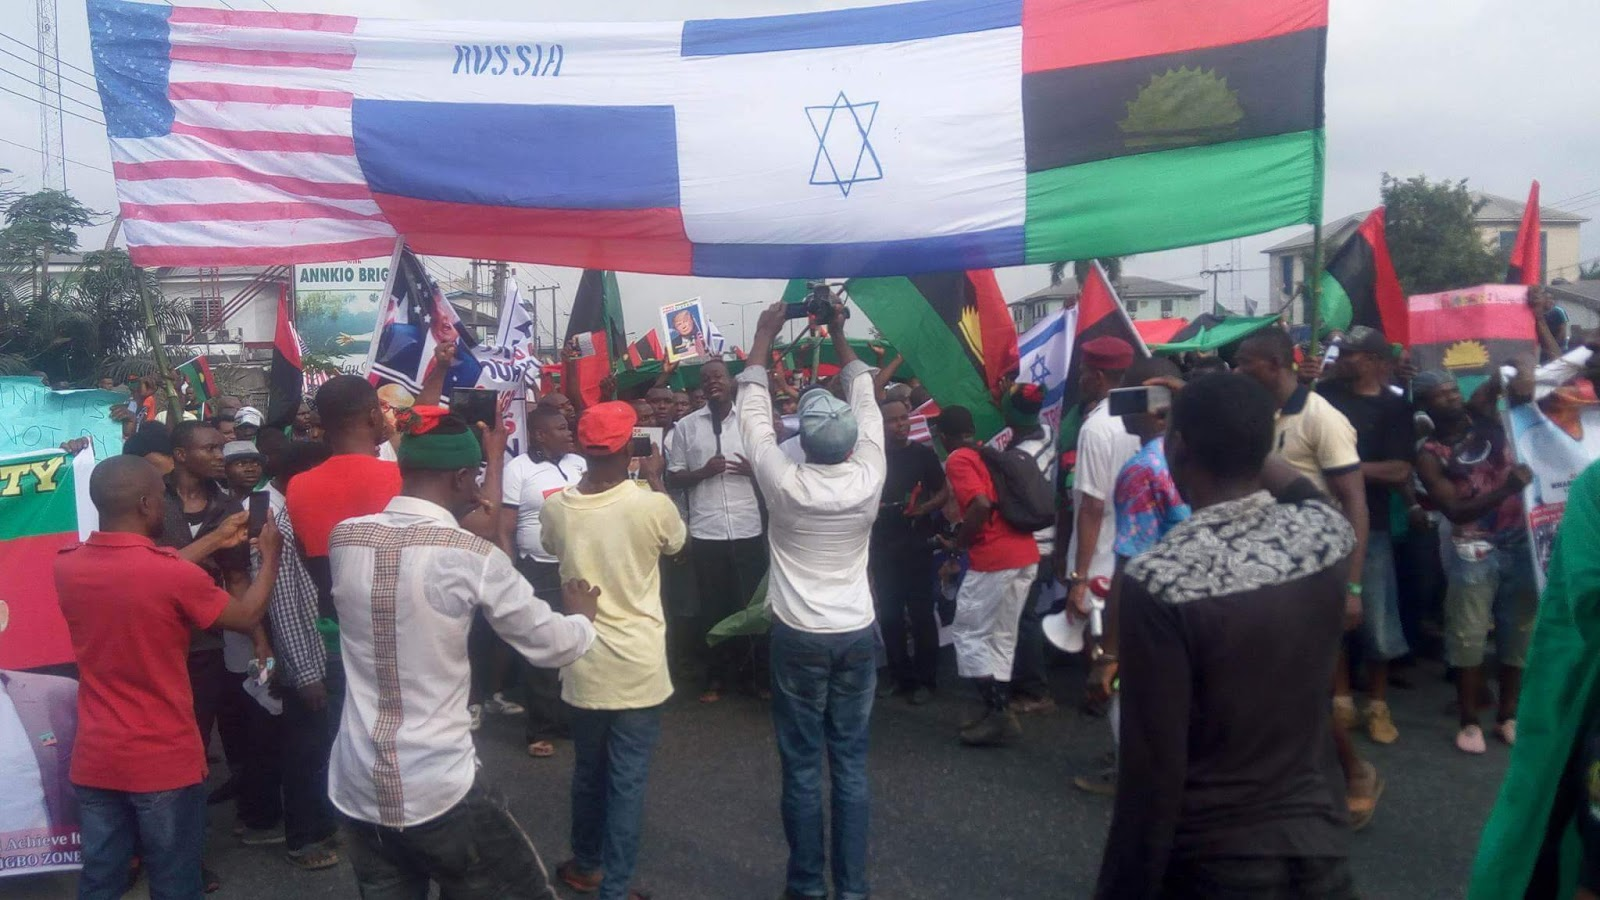 Biafra ipob trump rally the horror carnage and destruction of us biafra ipob trump rally the horror carnage and destruction of us israel russia biafra flag a proof of buharis extremism thecheapjerseys Image collections